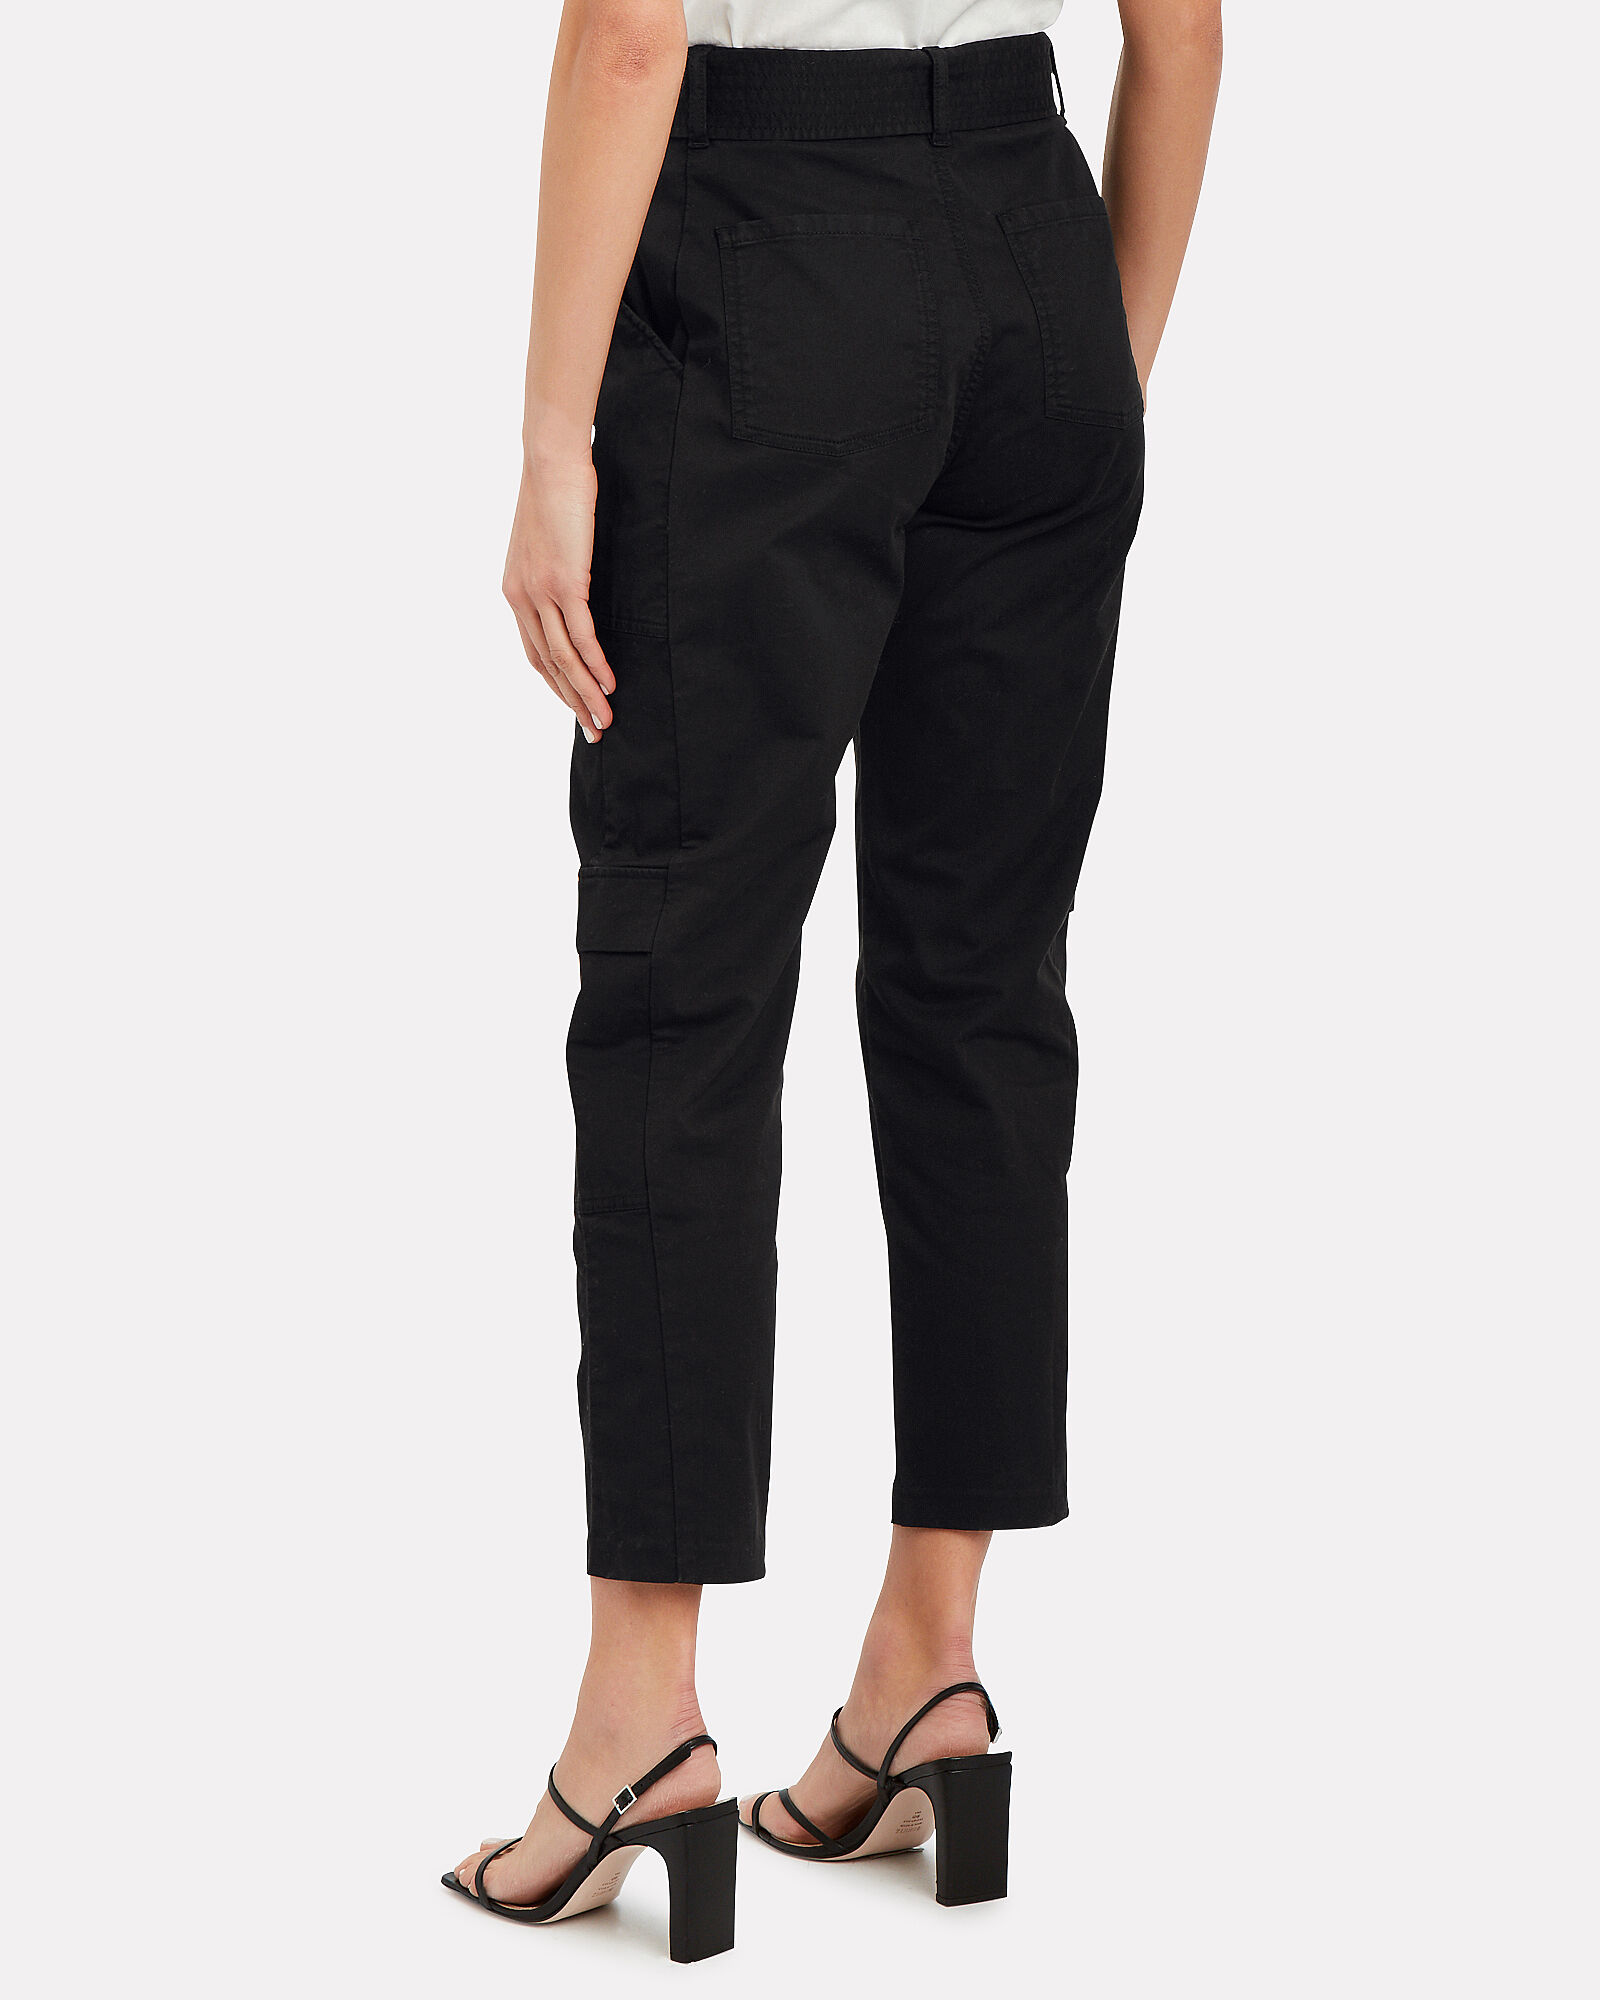 Athena Surplus Cargo Pants, BLACK, hi-res